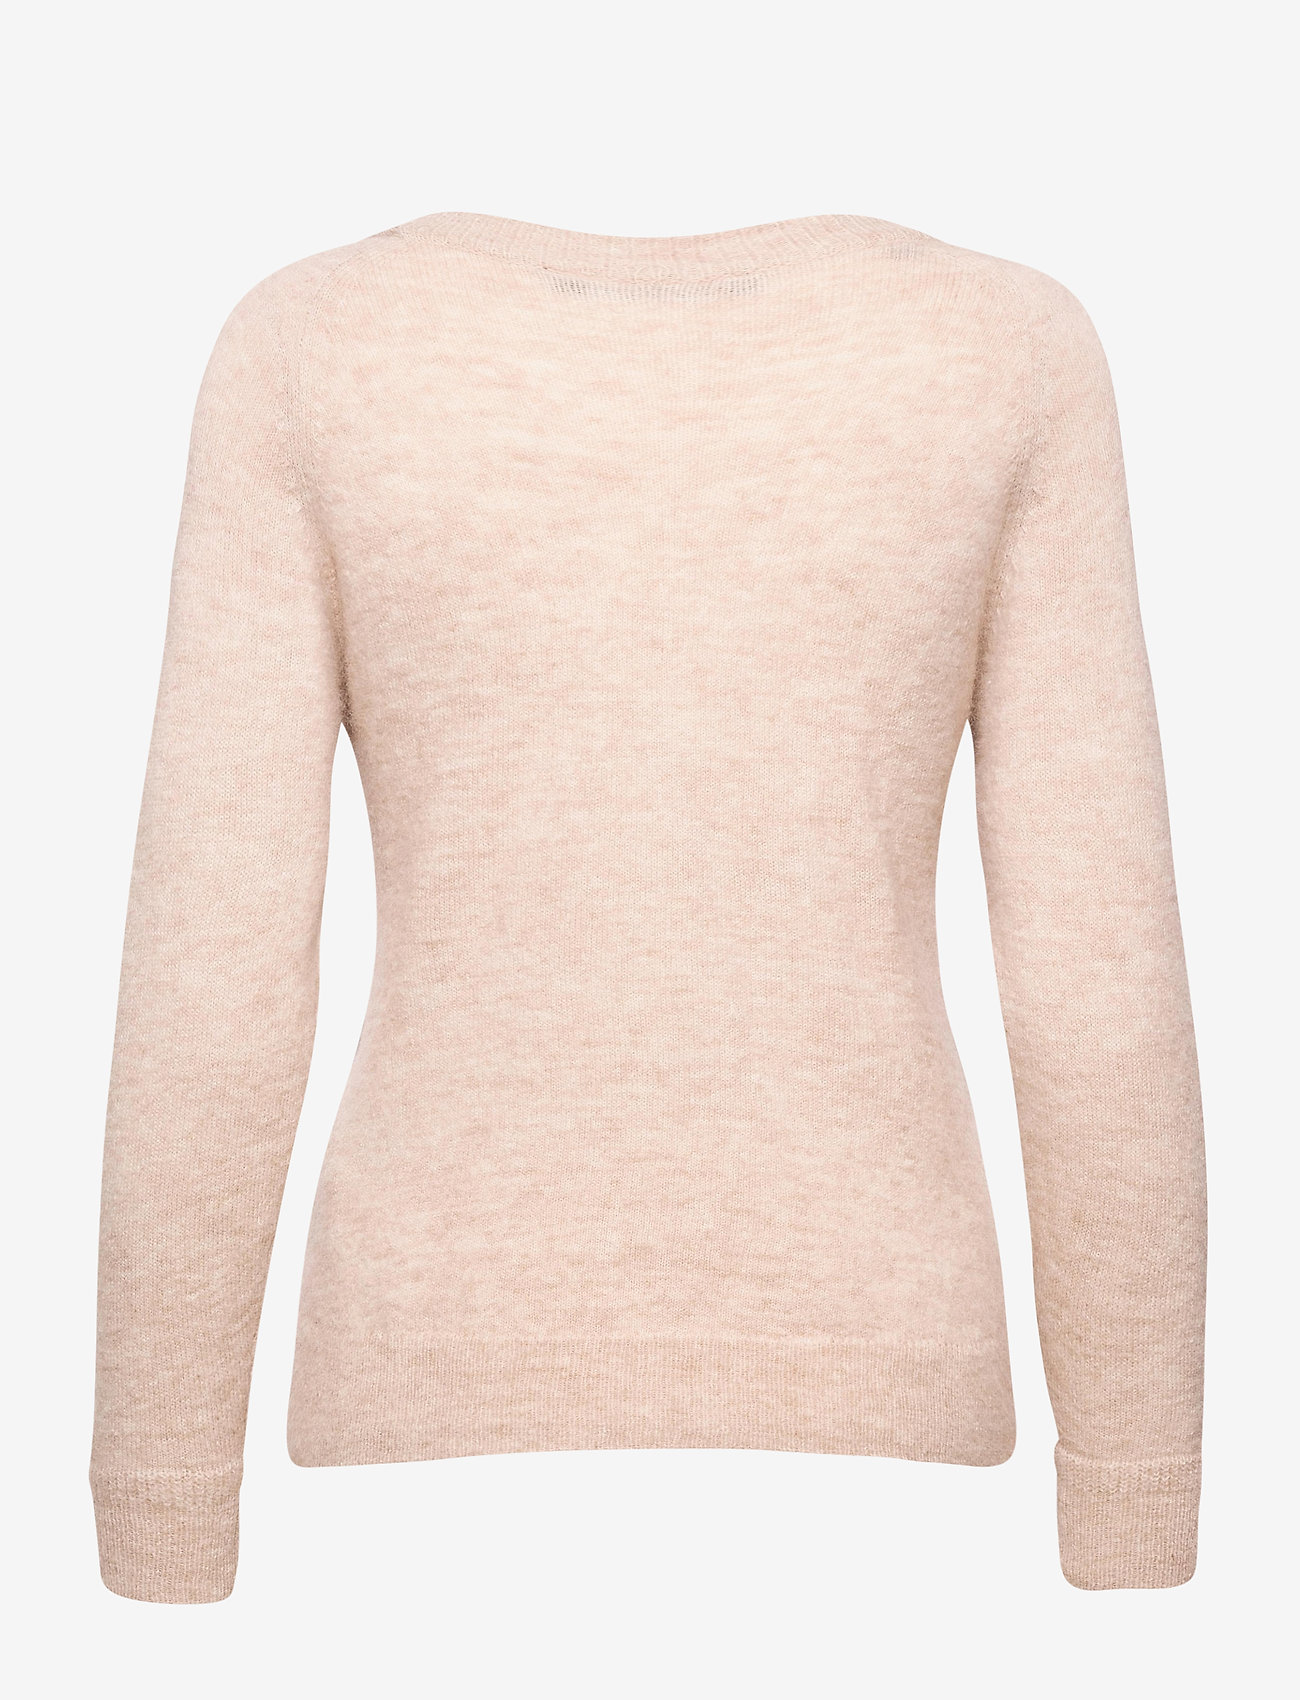 Selected Femme - SLFLULU LS KNIT O-NECK - tröjor - birch - 1